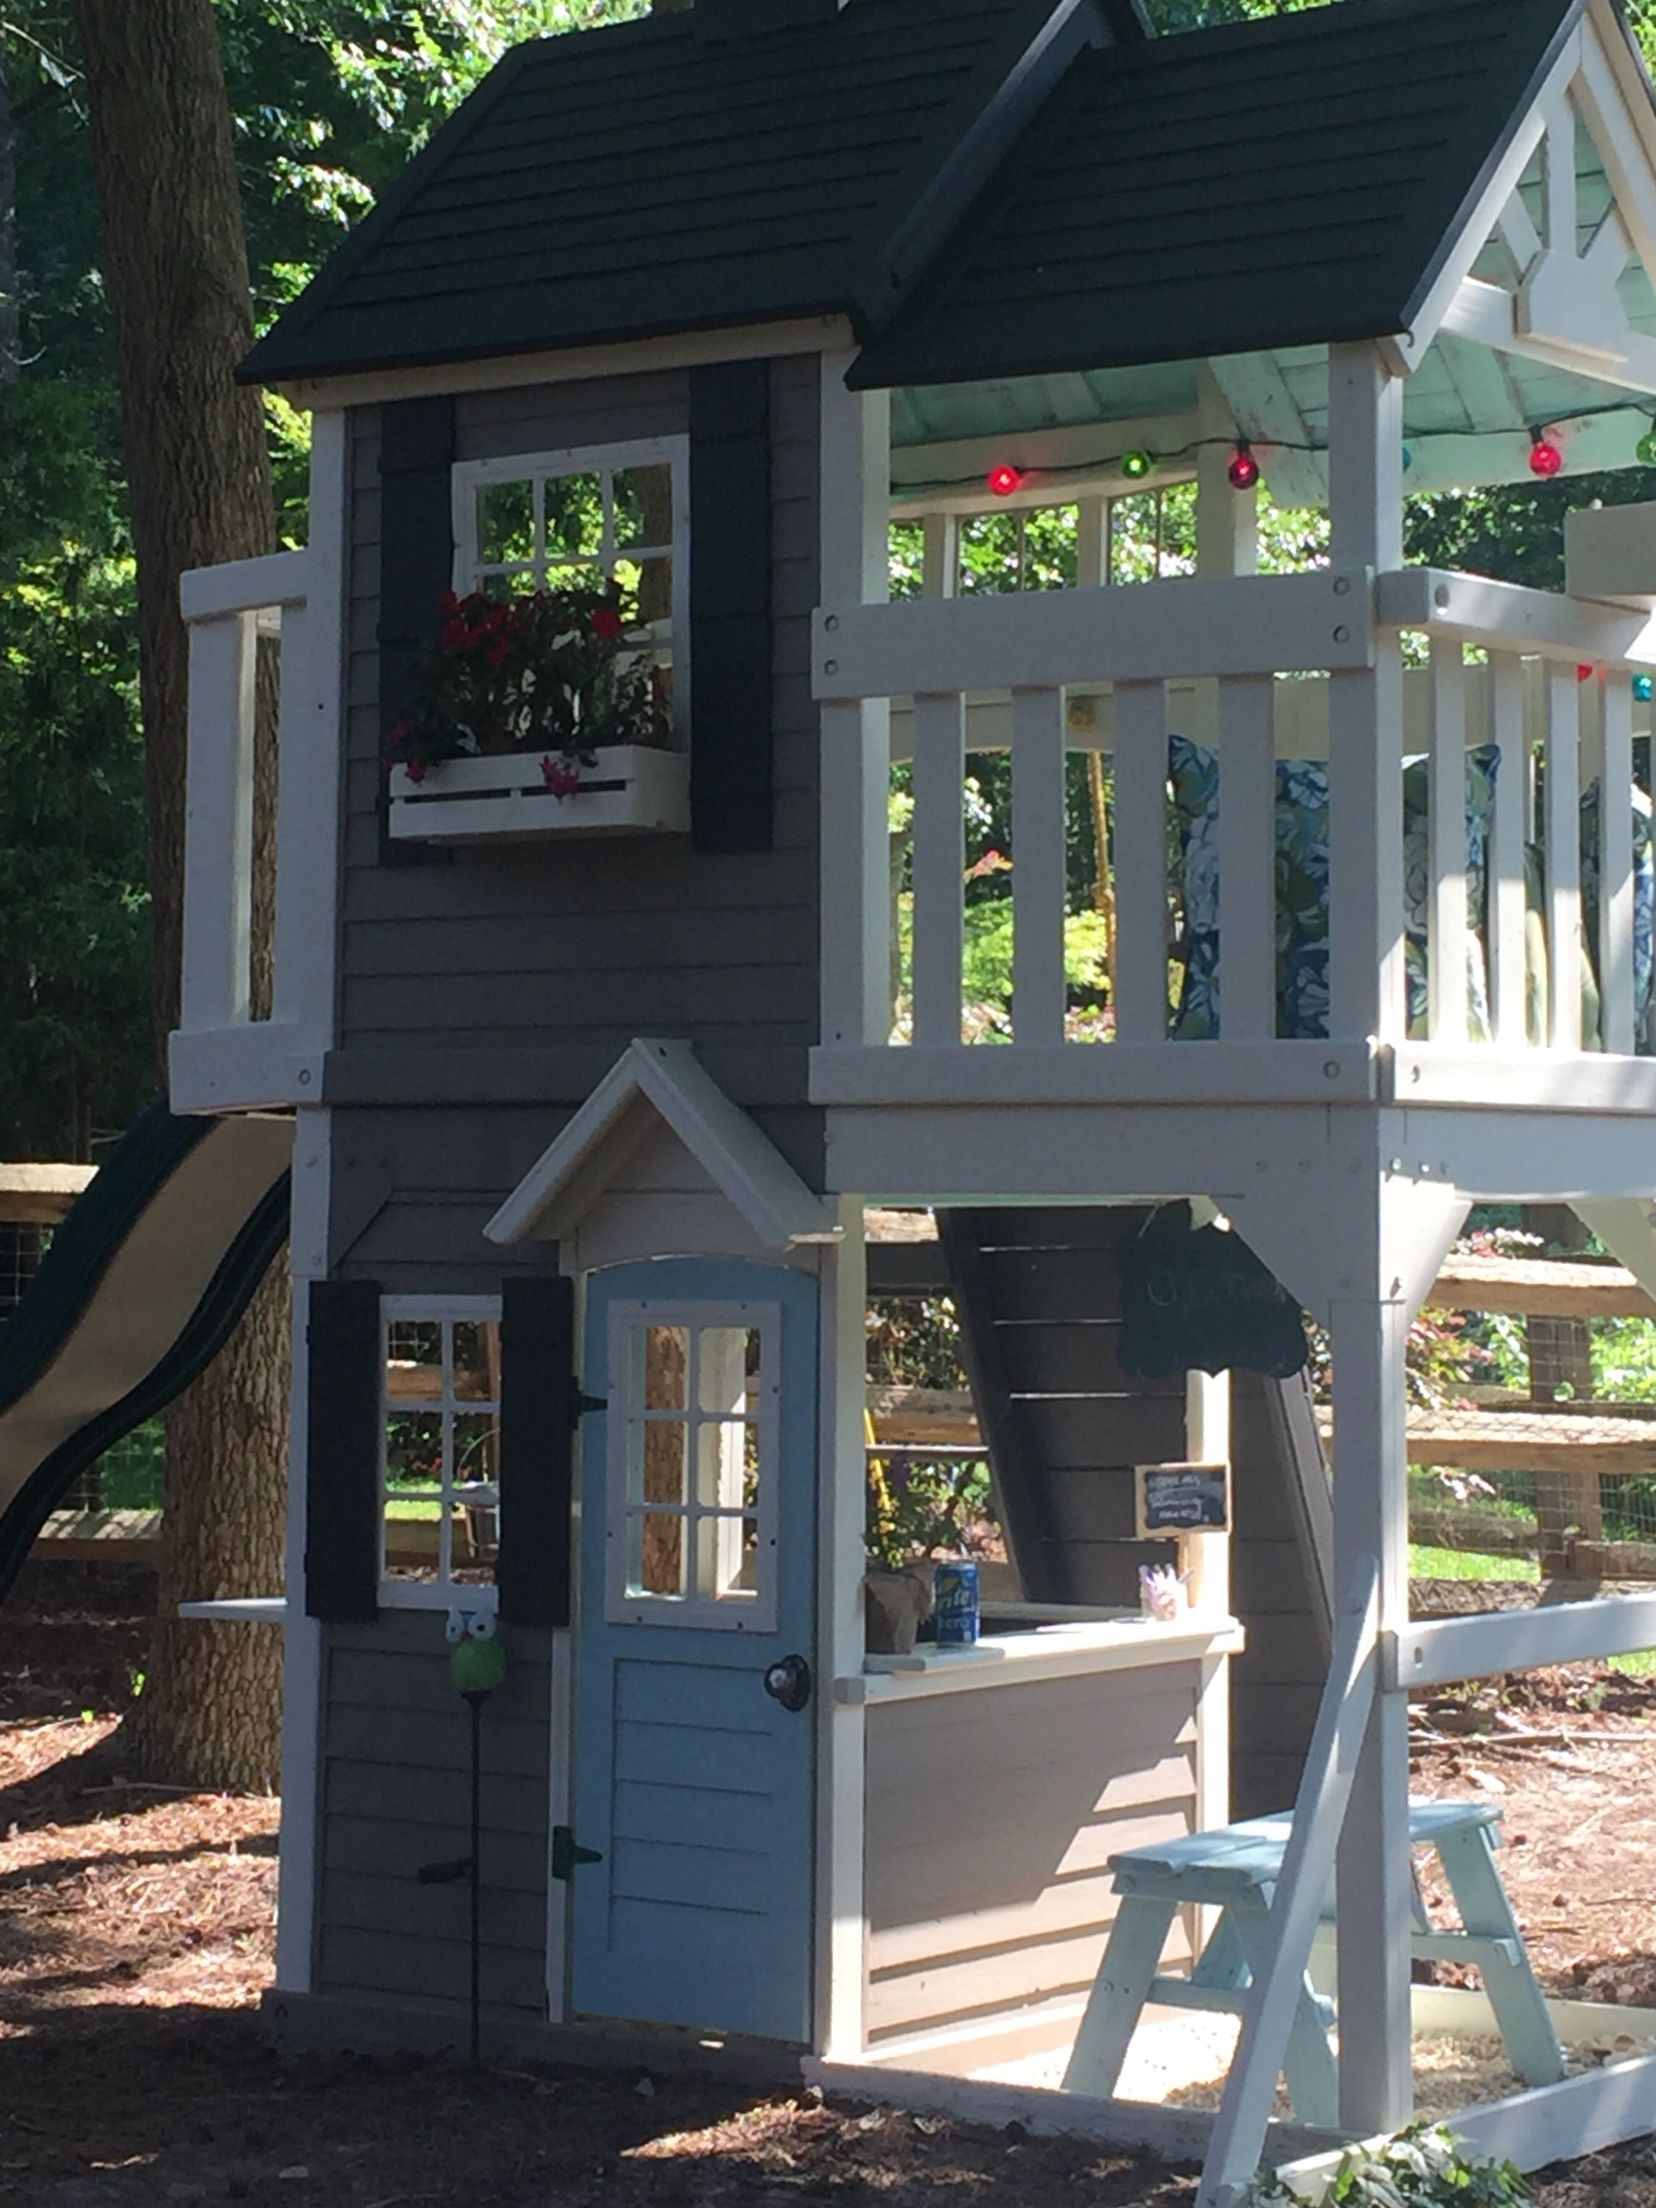 Playset Swingset Renovation We Painted Our Playset From Costco To Match Our House Play Houses Playset Outdoor Kids Backyard Playground